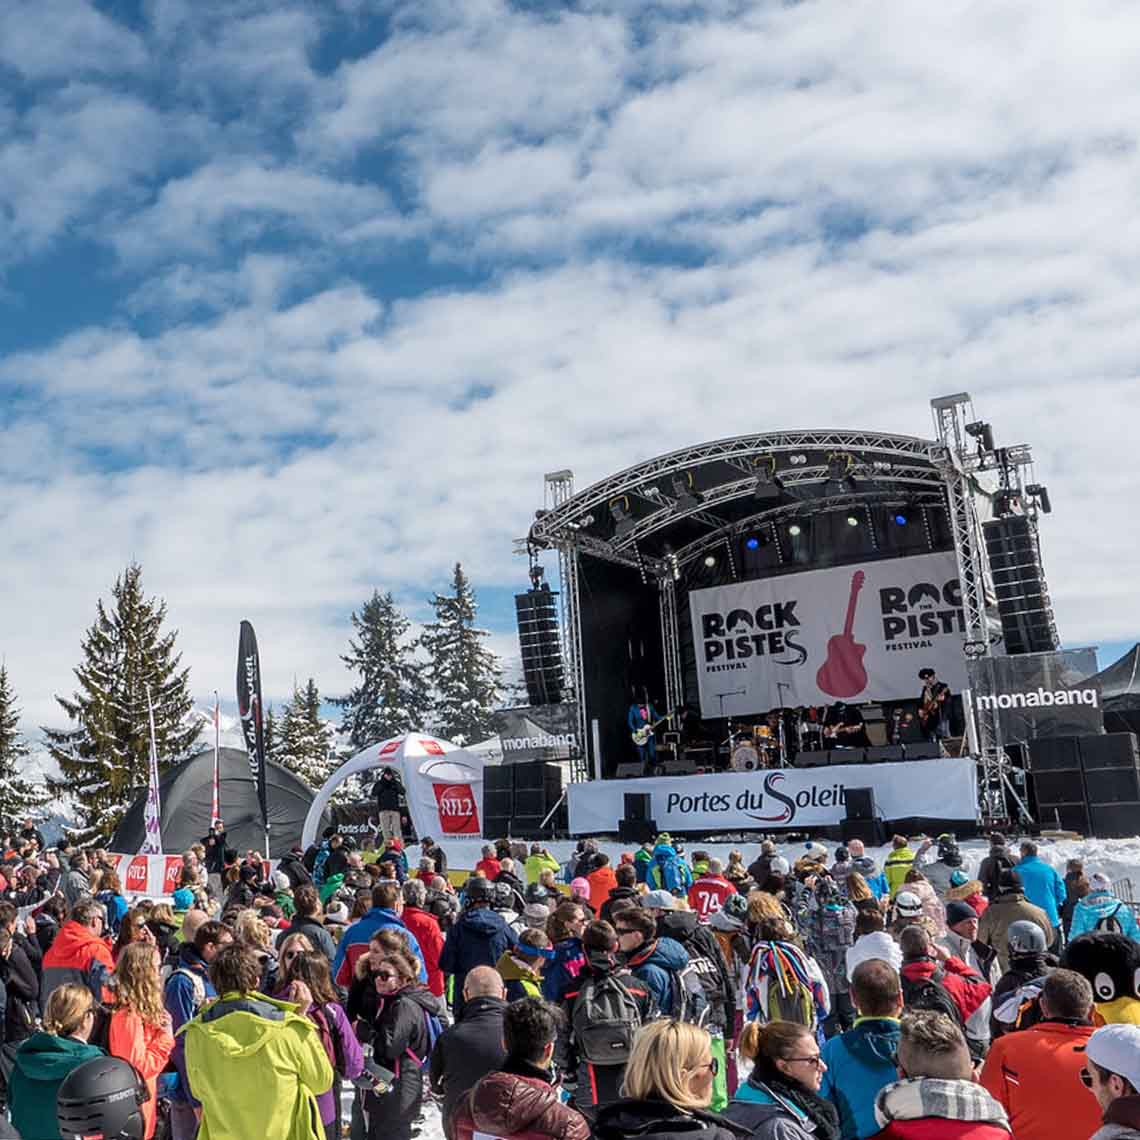 Rock the pistes festival - Travelvibe